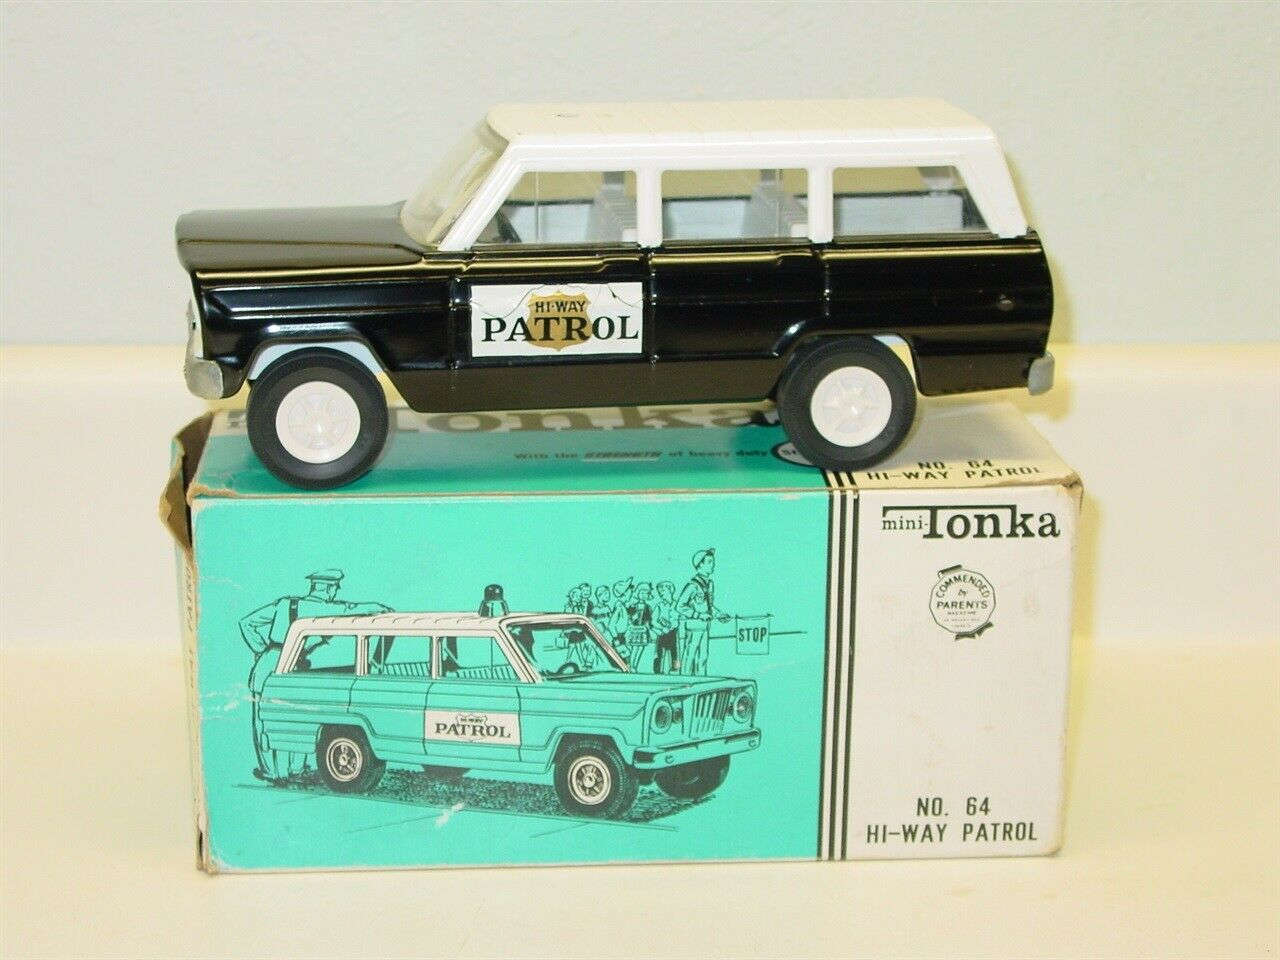 Vintage Mini-Tonka Hi-Way Patrol No. 64 with Box, Pressed Steel Toy Vehicle